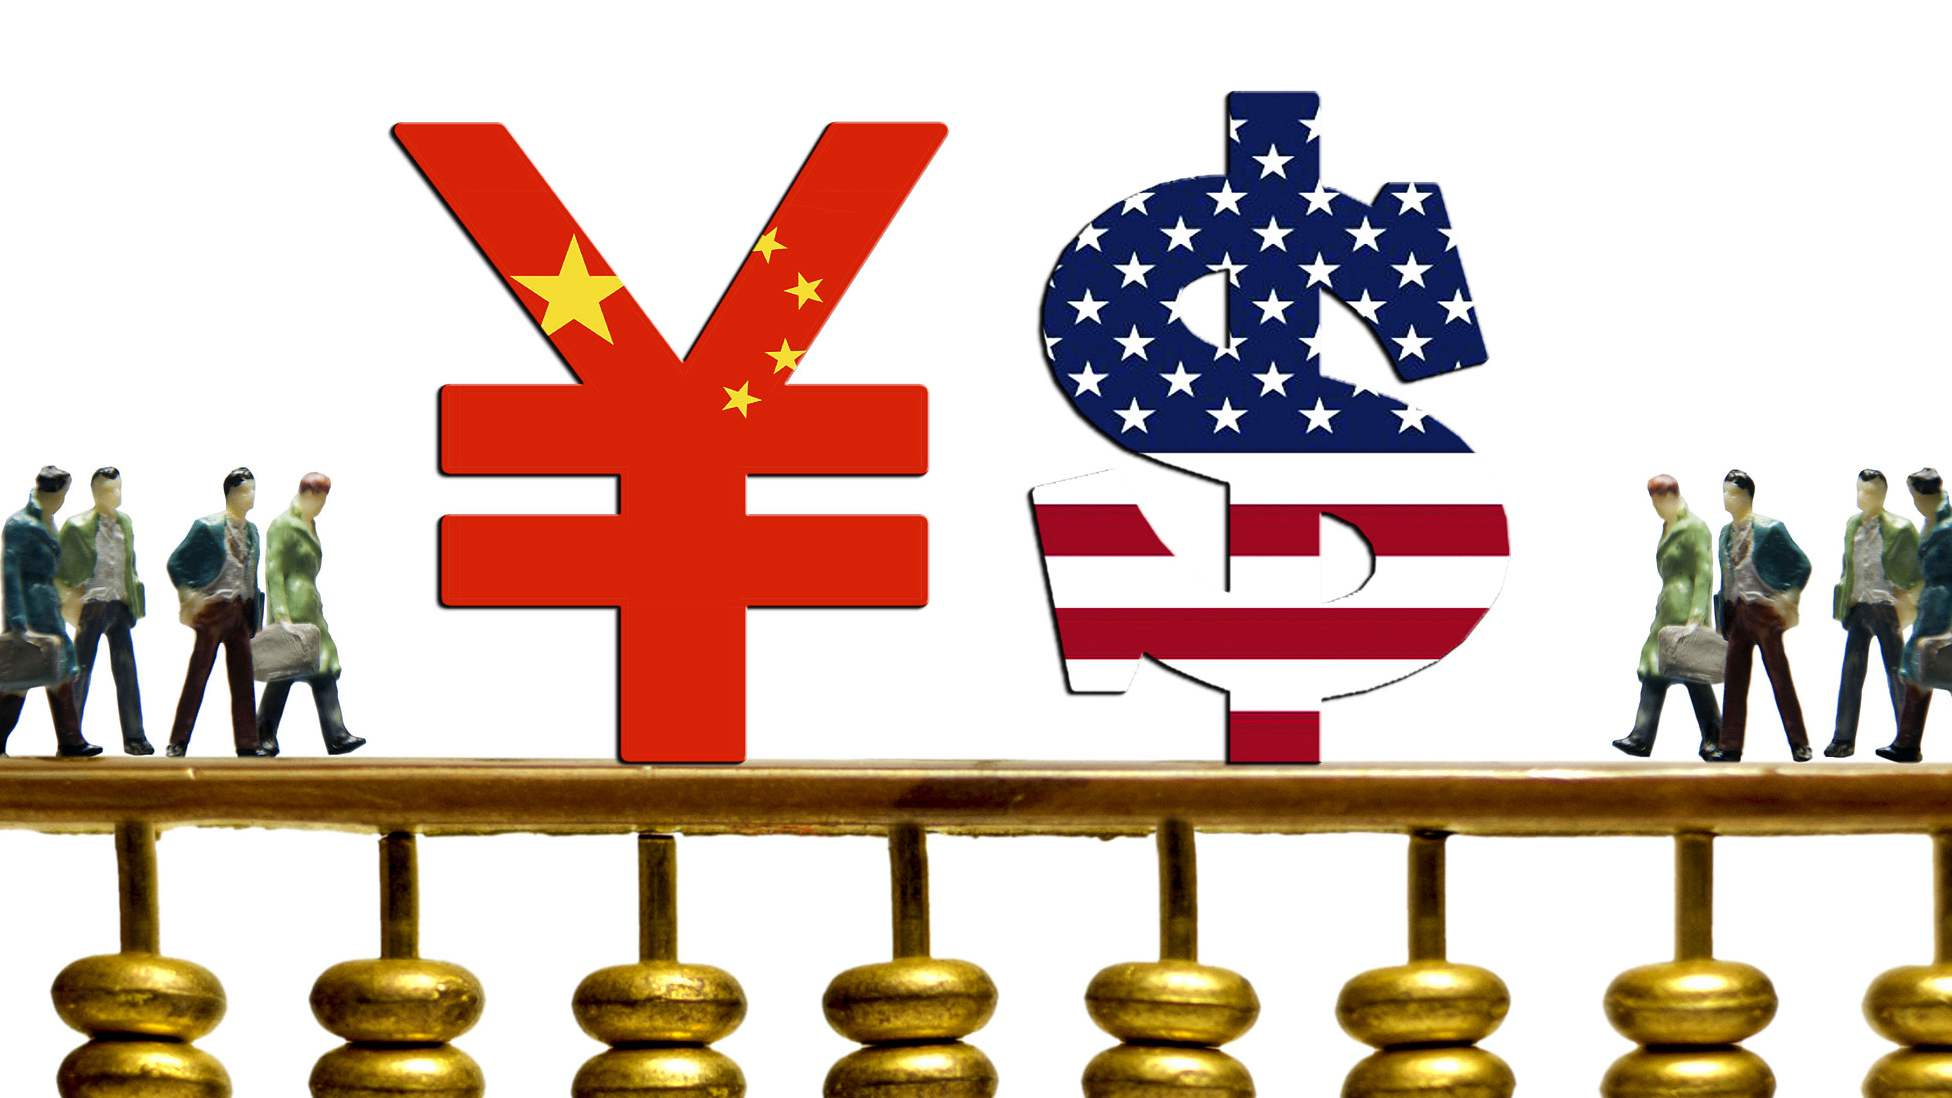 Expert refutes US claims about China's economic aggression